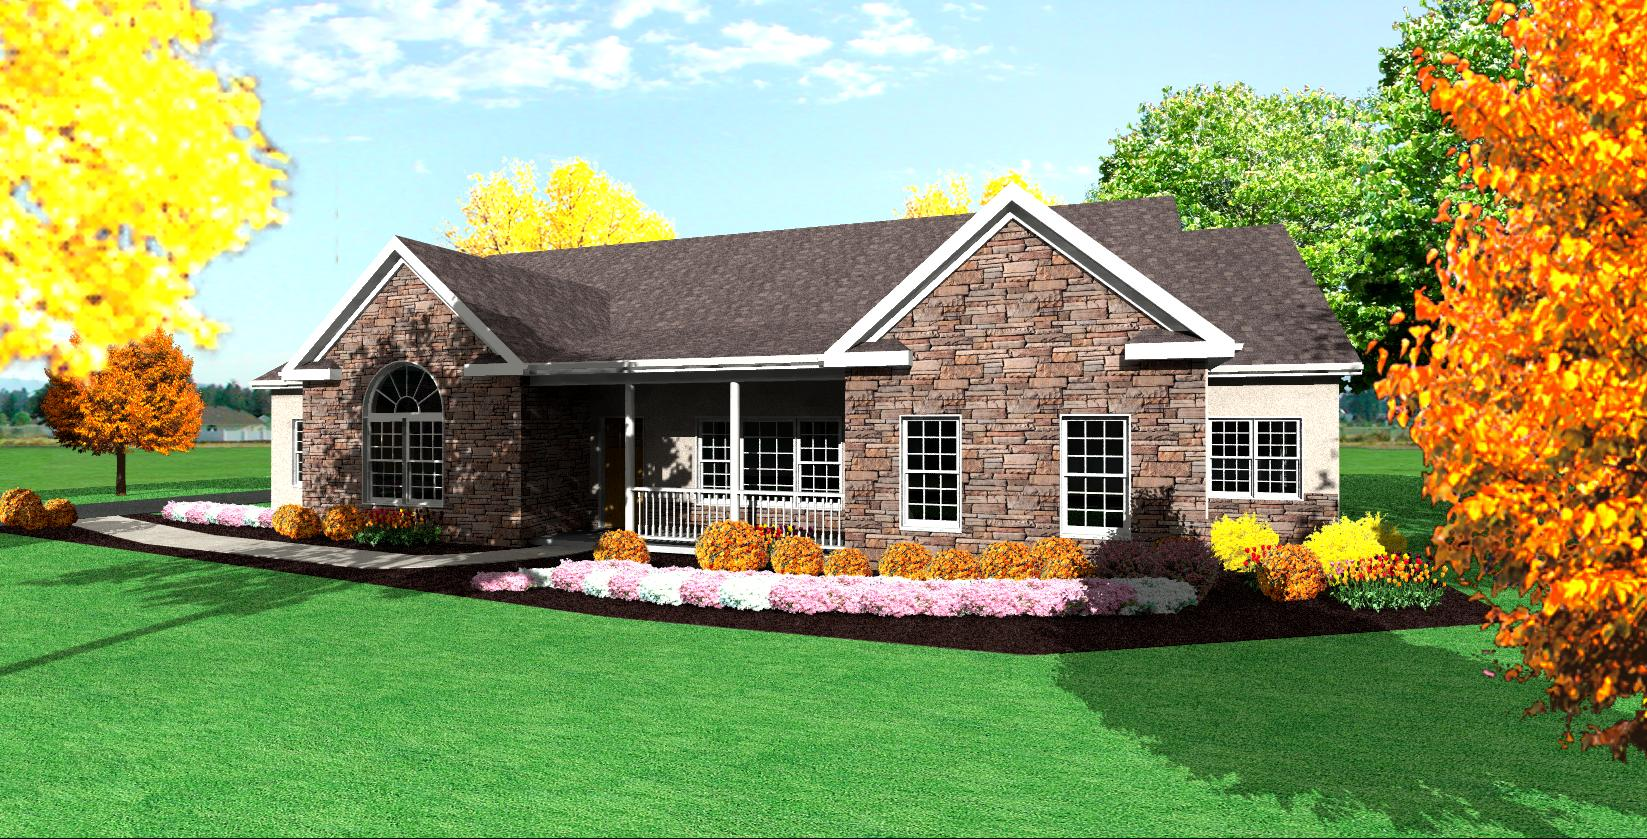 Single story ranch house plans unique house plans for Single story ranch homes